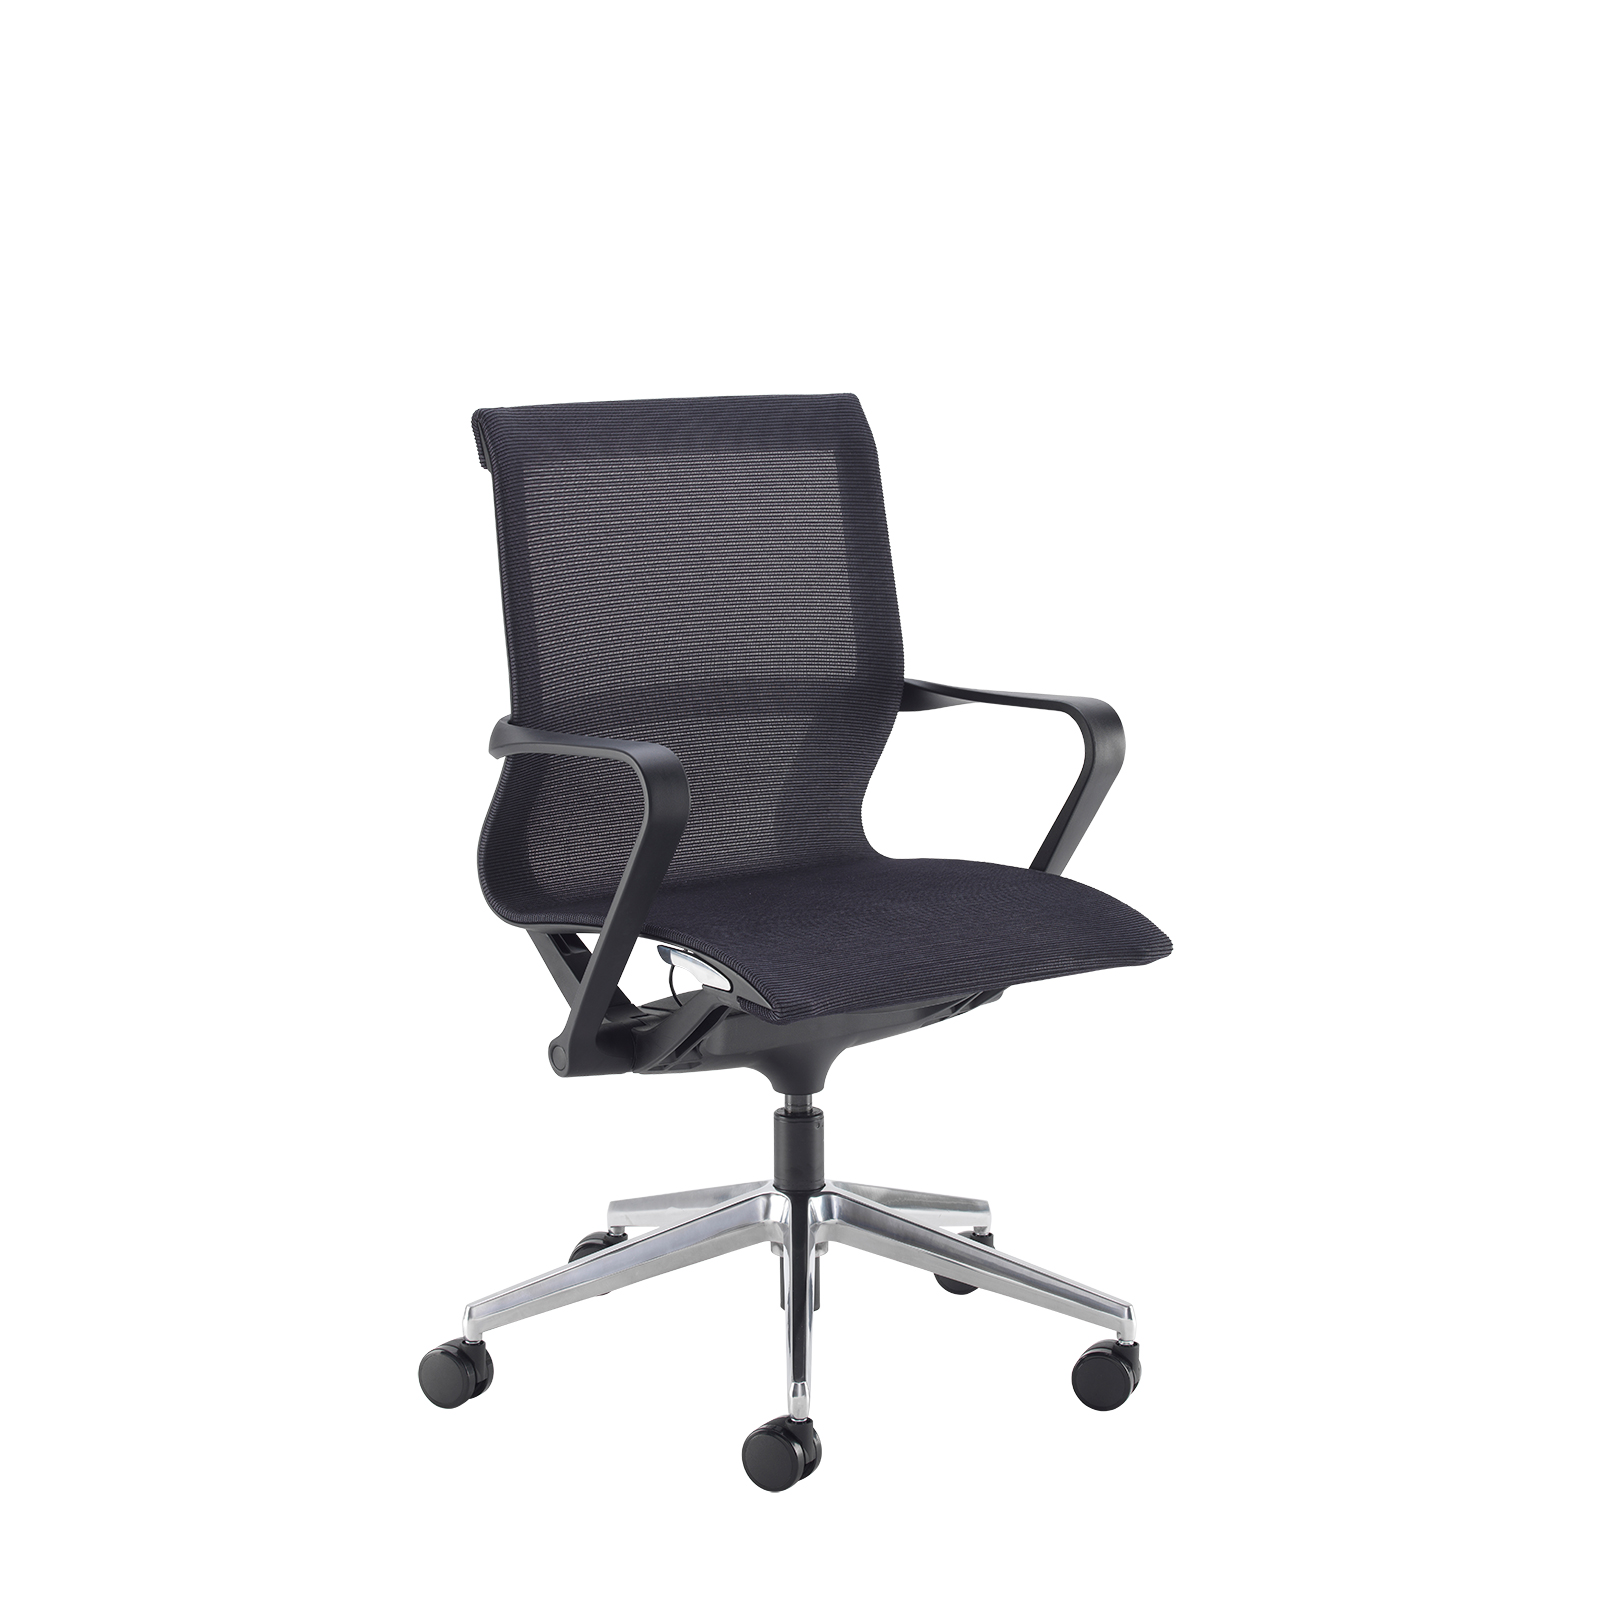 Lola medium back designer operators chair with black mesh and black frame and aluminium base